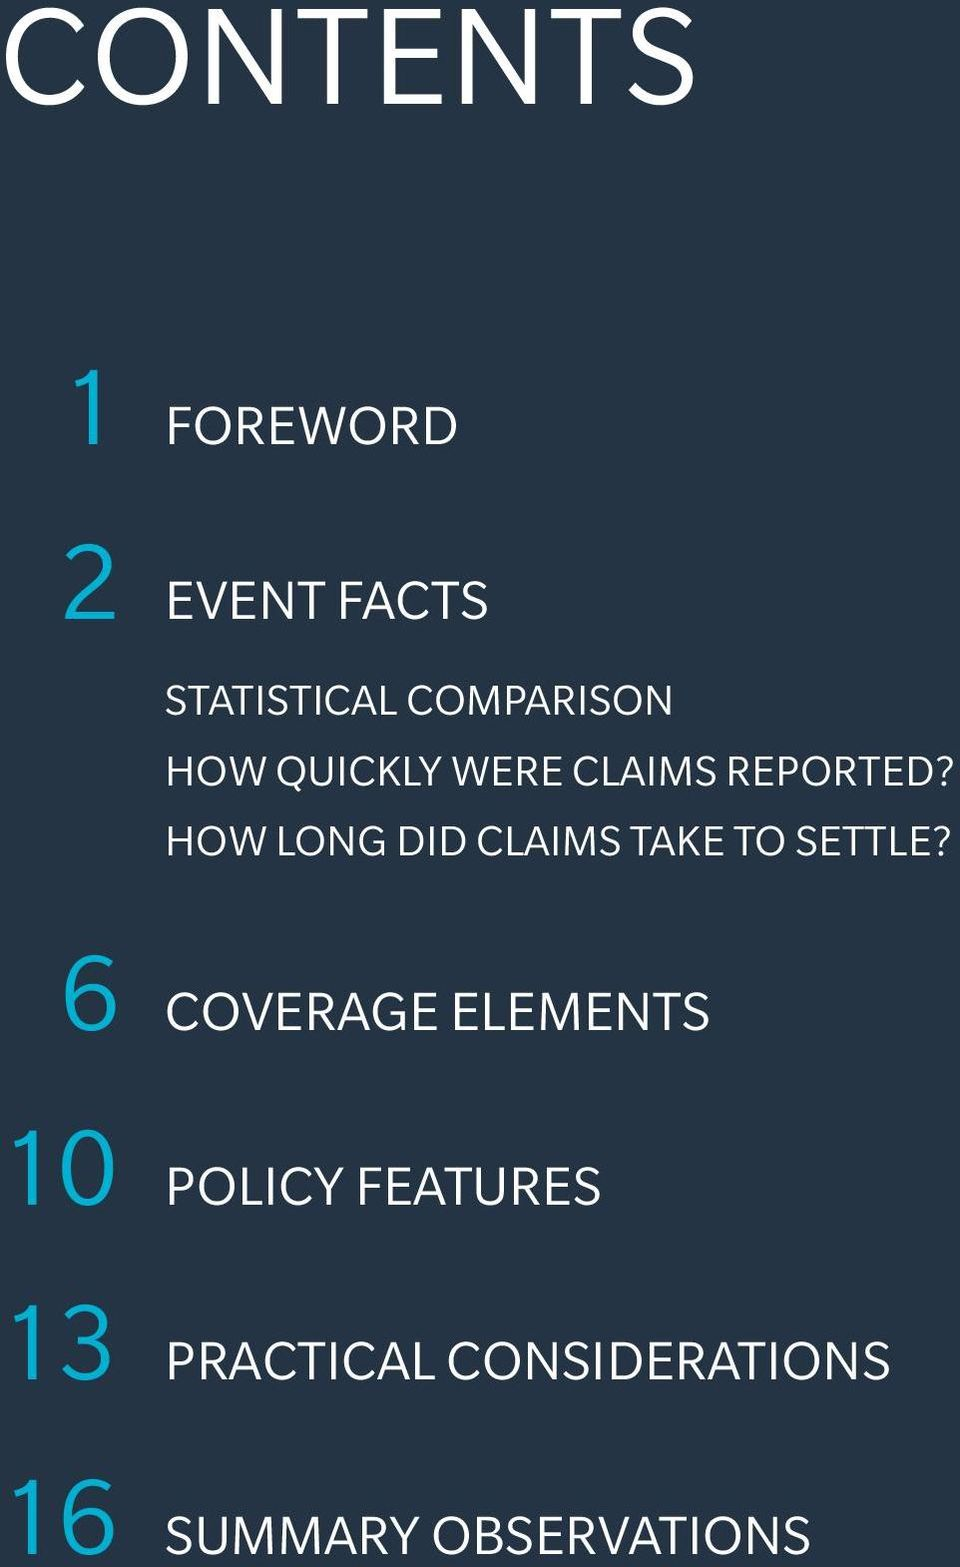 6 COVERAGE ELEMENTS 10 POLICY FEATURES 13 PRACTICAL CONSIDERATIONS 16